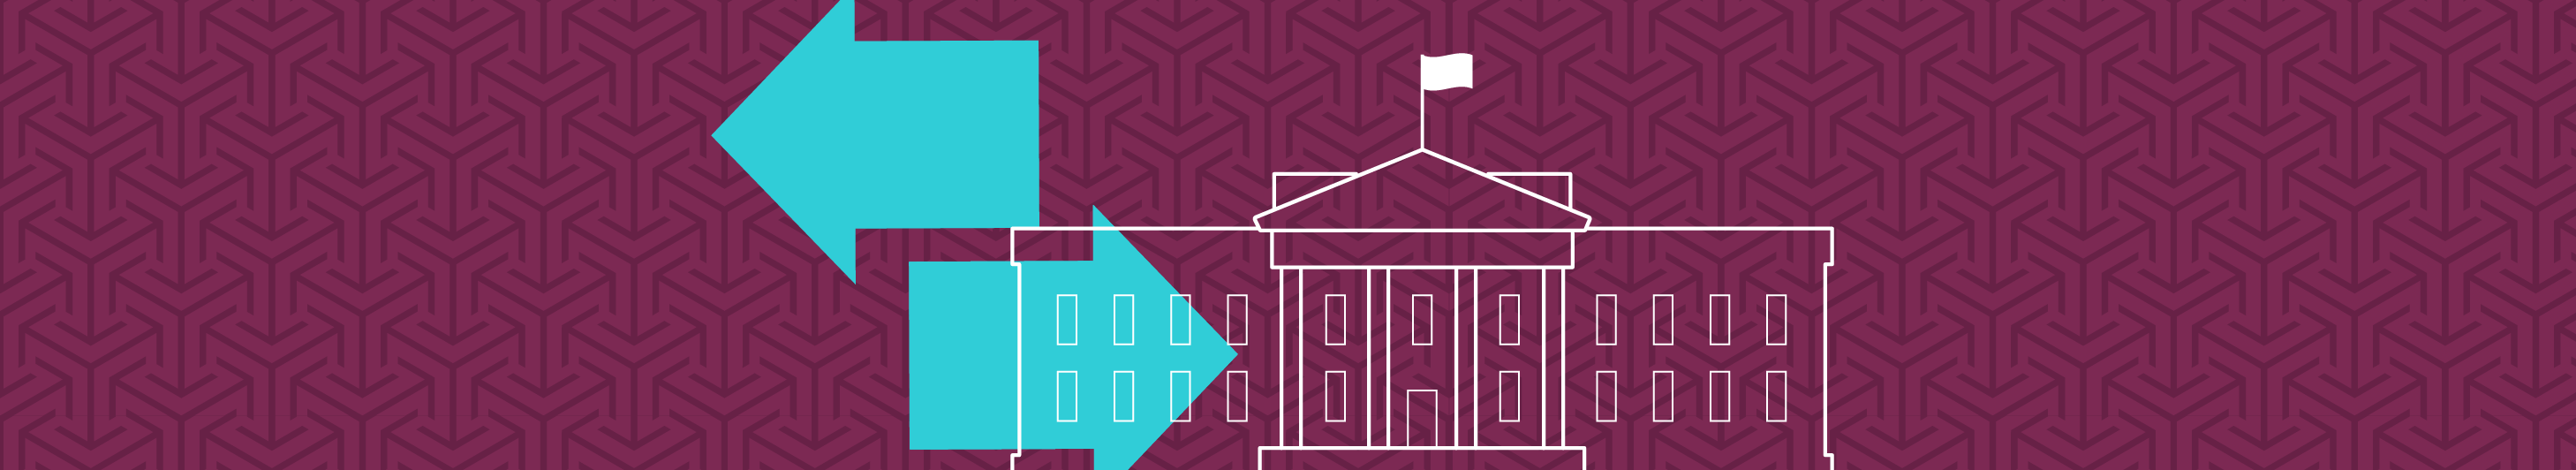 illustration of white house with arrows